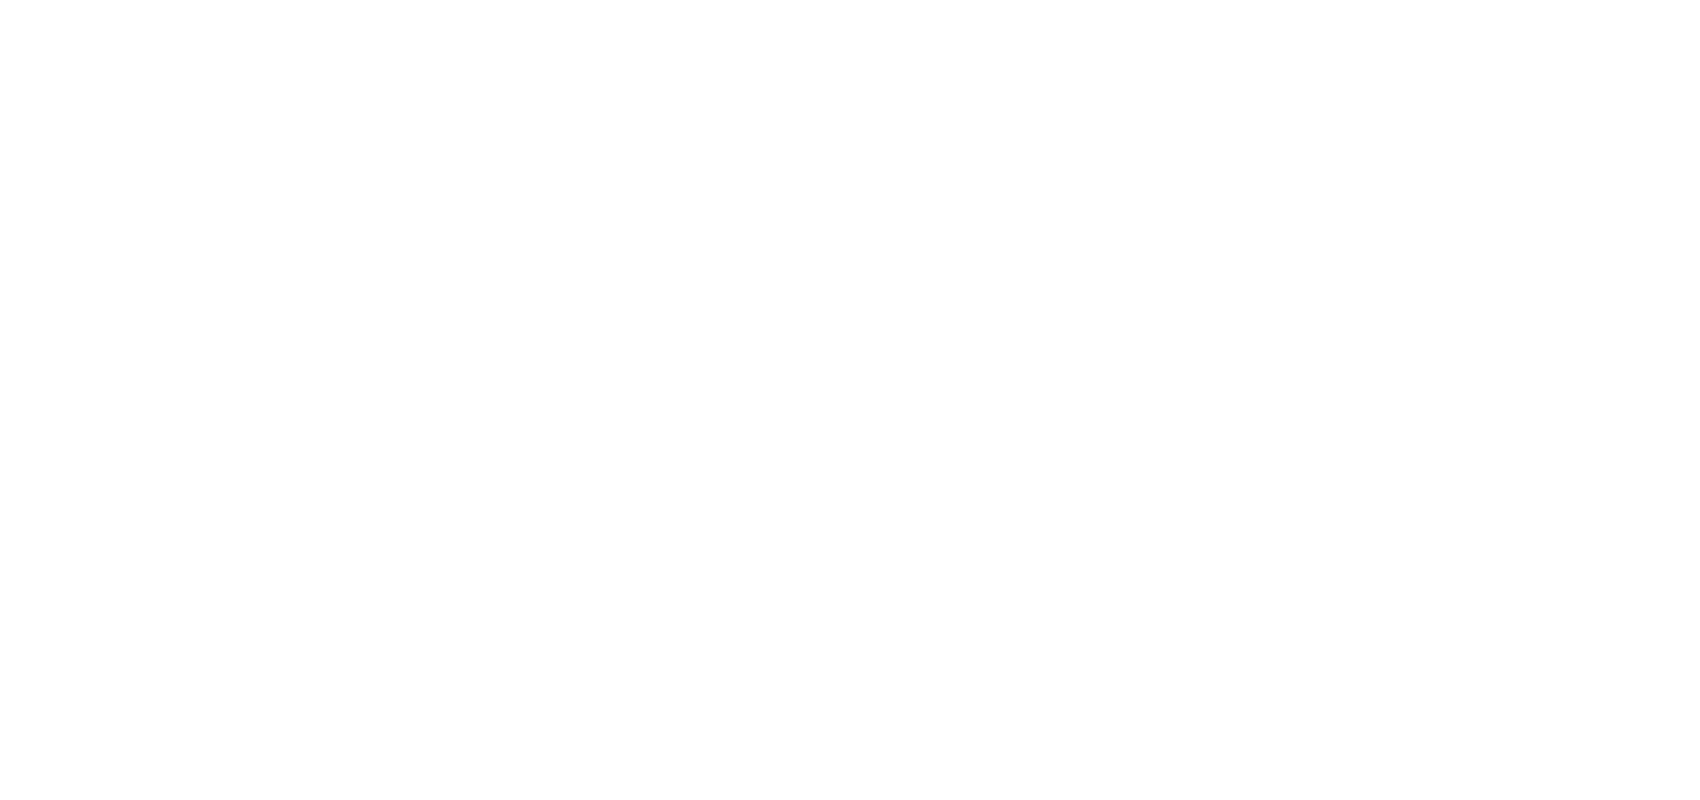 10 Barrel Brewing Age Gate